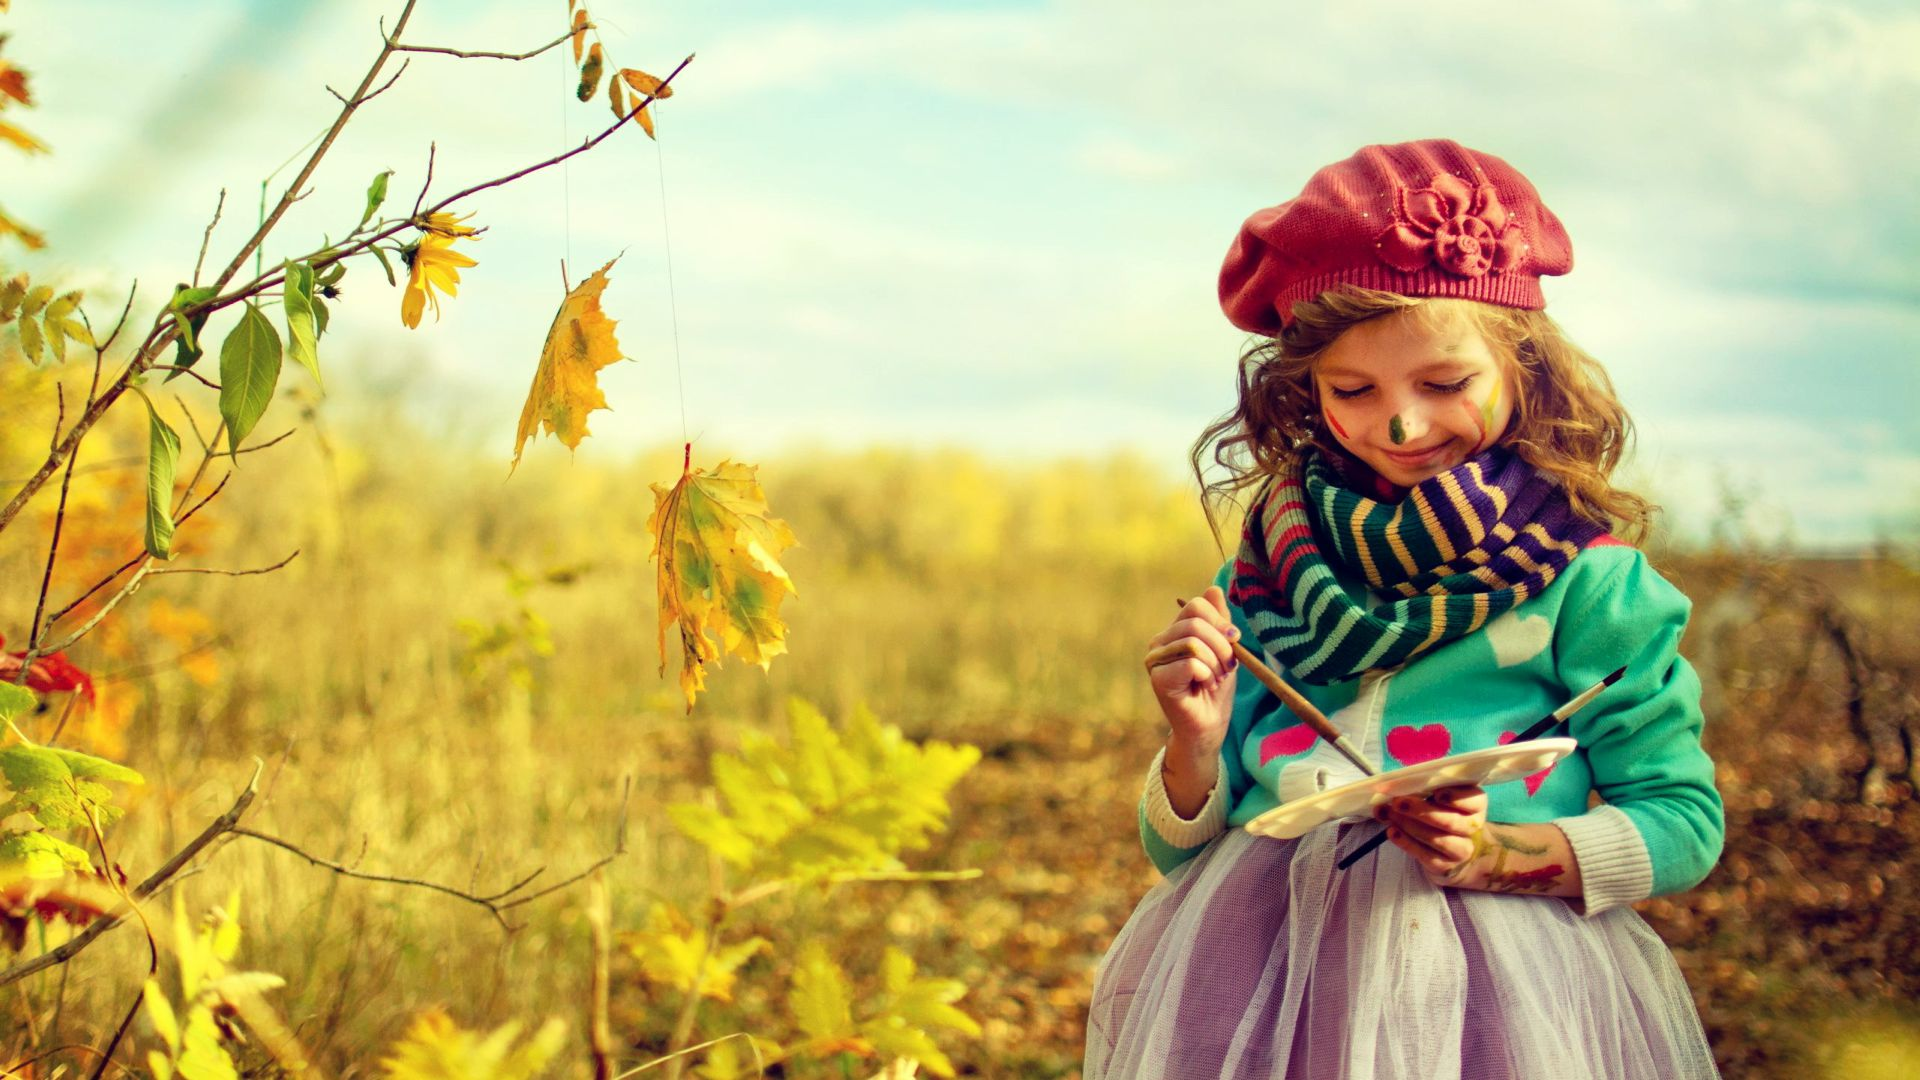 Collection Of Cute Little Girl Wallpapers On HDWallpapers